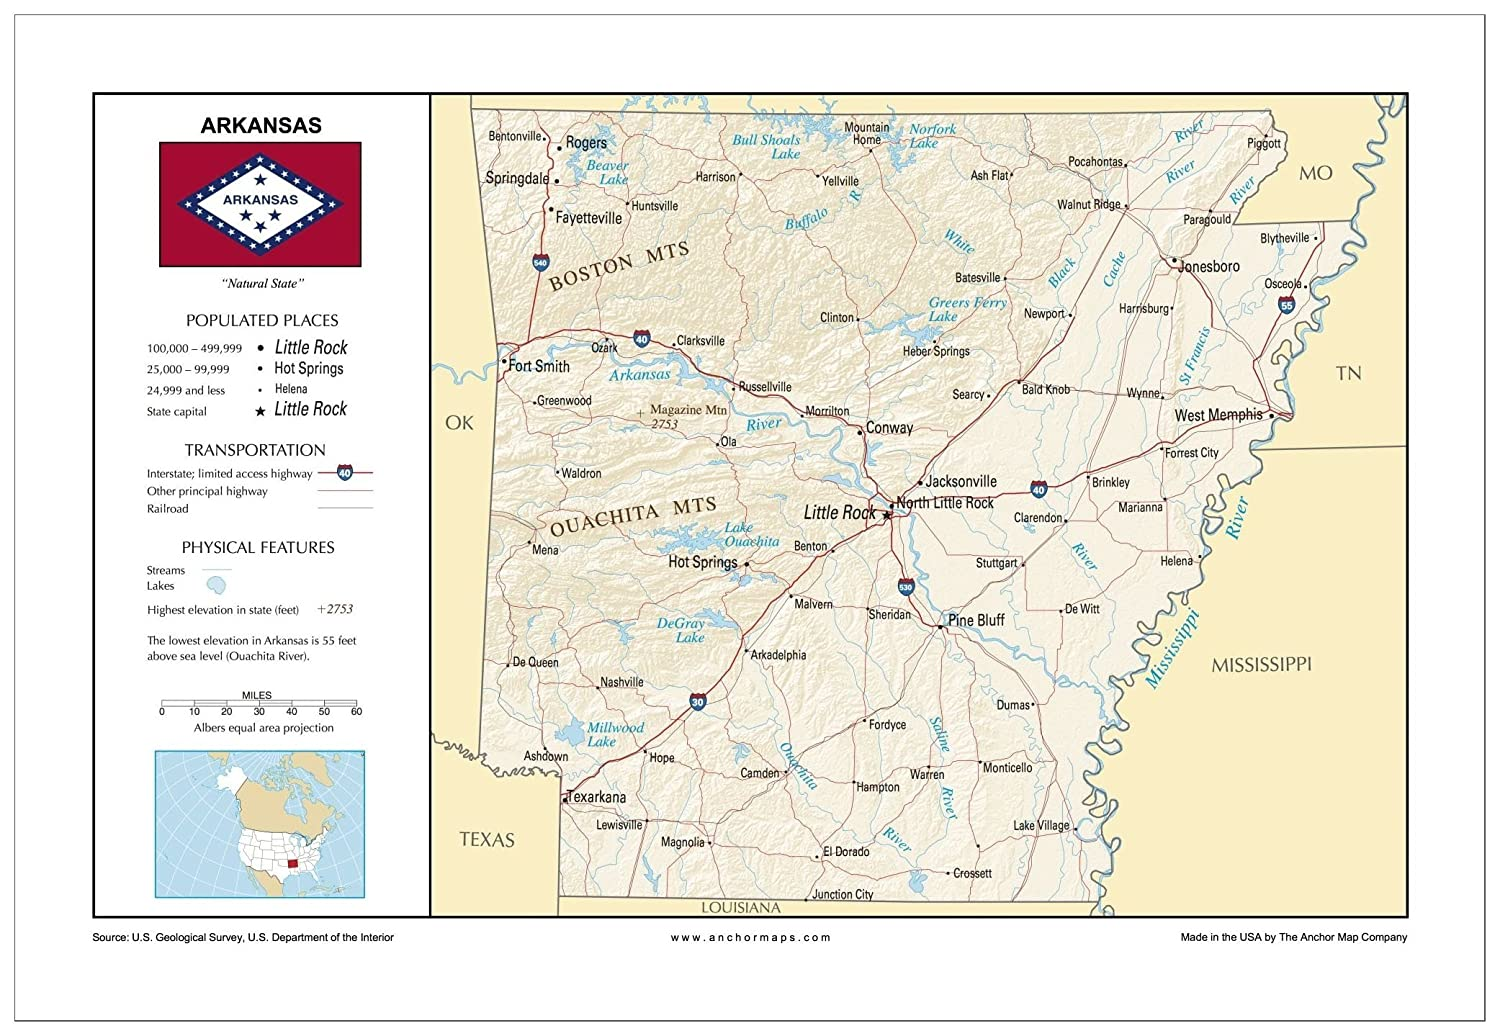 Amazon.com : 13x19 Arkansas and 13x19 United States General ...